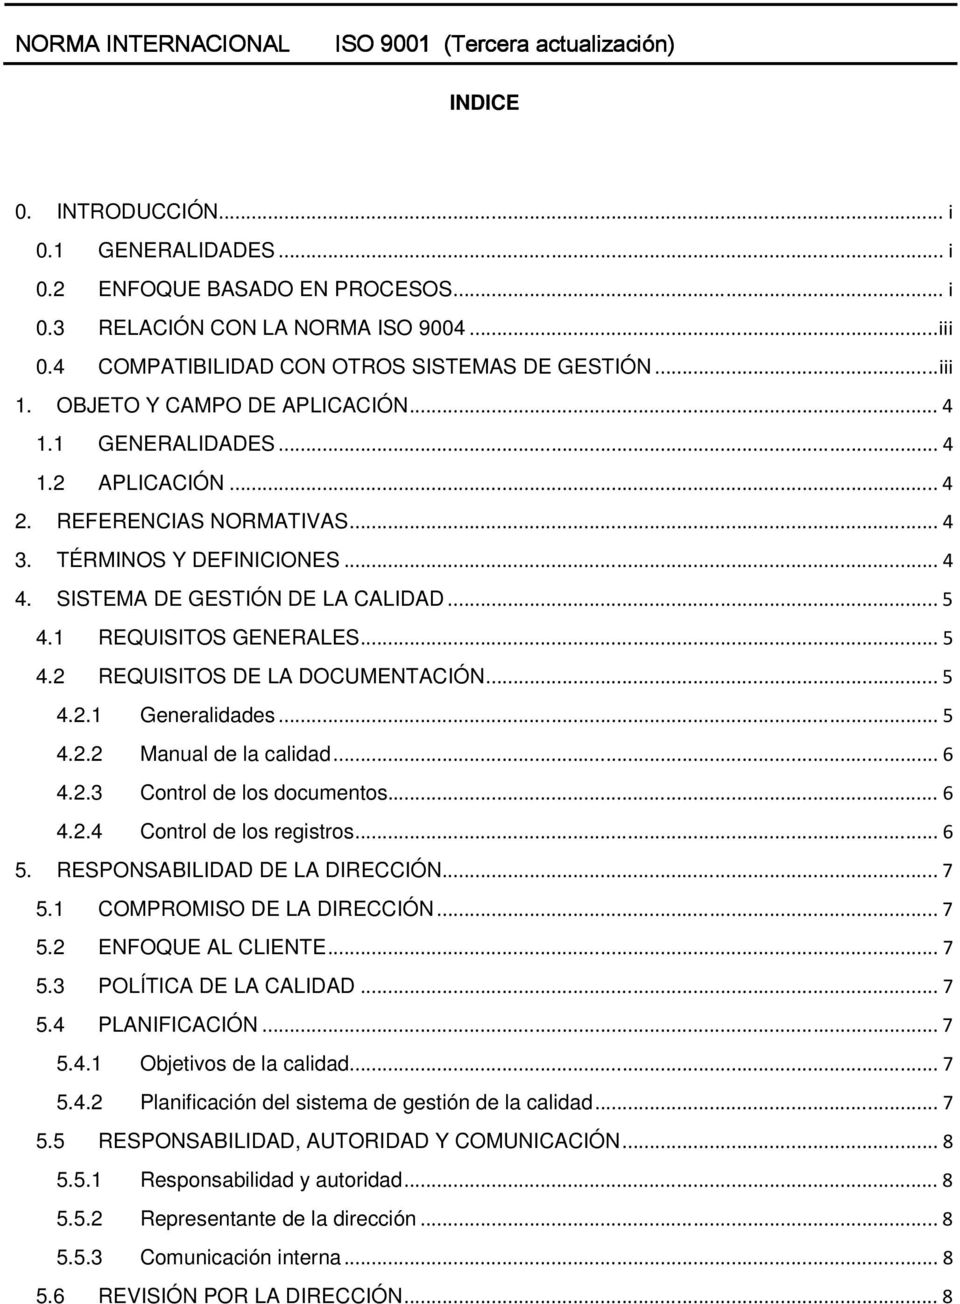 1 REQUISITOS GENERALES... 5 4.2 REQUISITOS DE LA DOCUMENTACIÓN... 5 4.2.1 Generalidades... 5 4.2.2 Manual de la calidad... 6 4.2.3 Control de los documentos... 6 4.2.4 Control de los registros... 6 5.